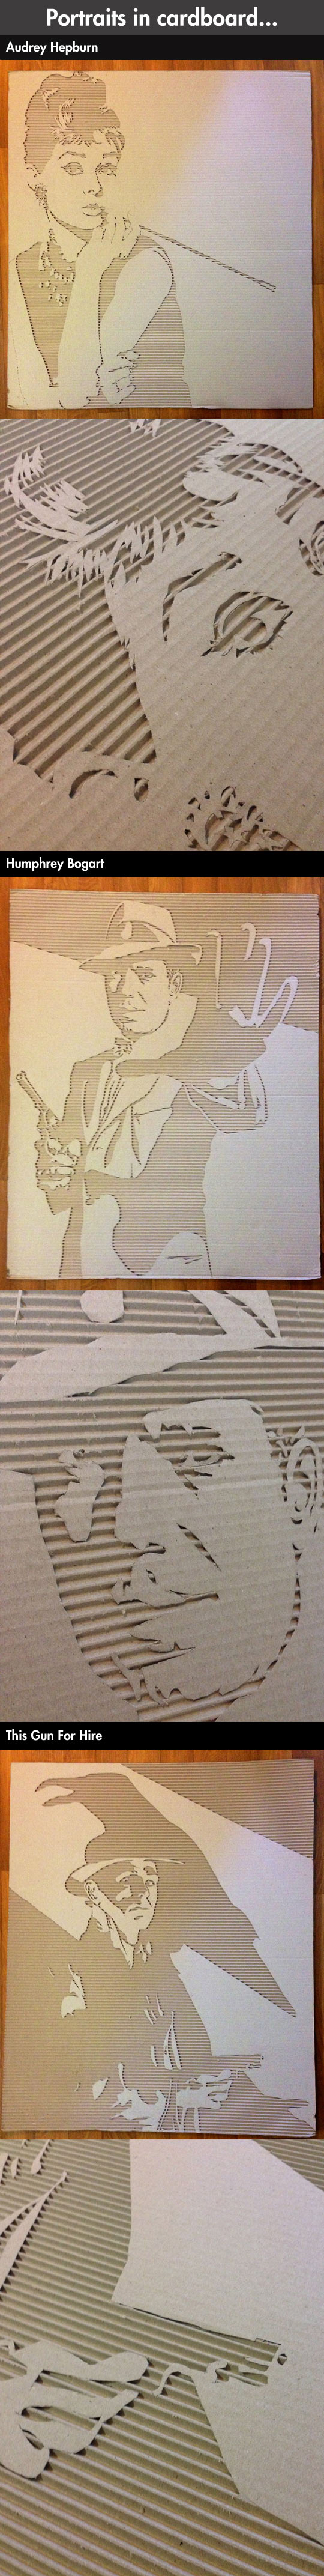 Carving portraits into cardboard…